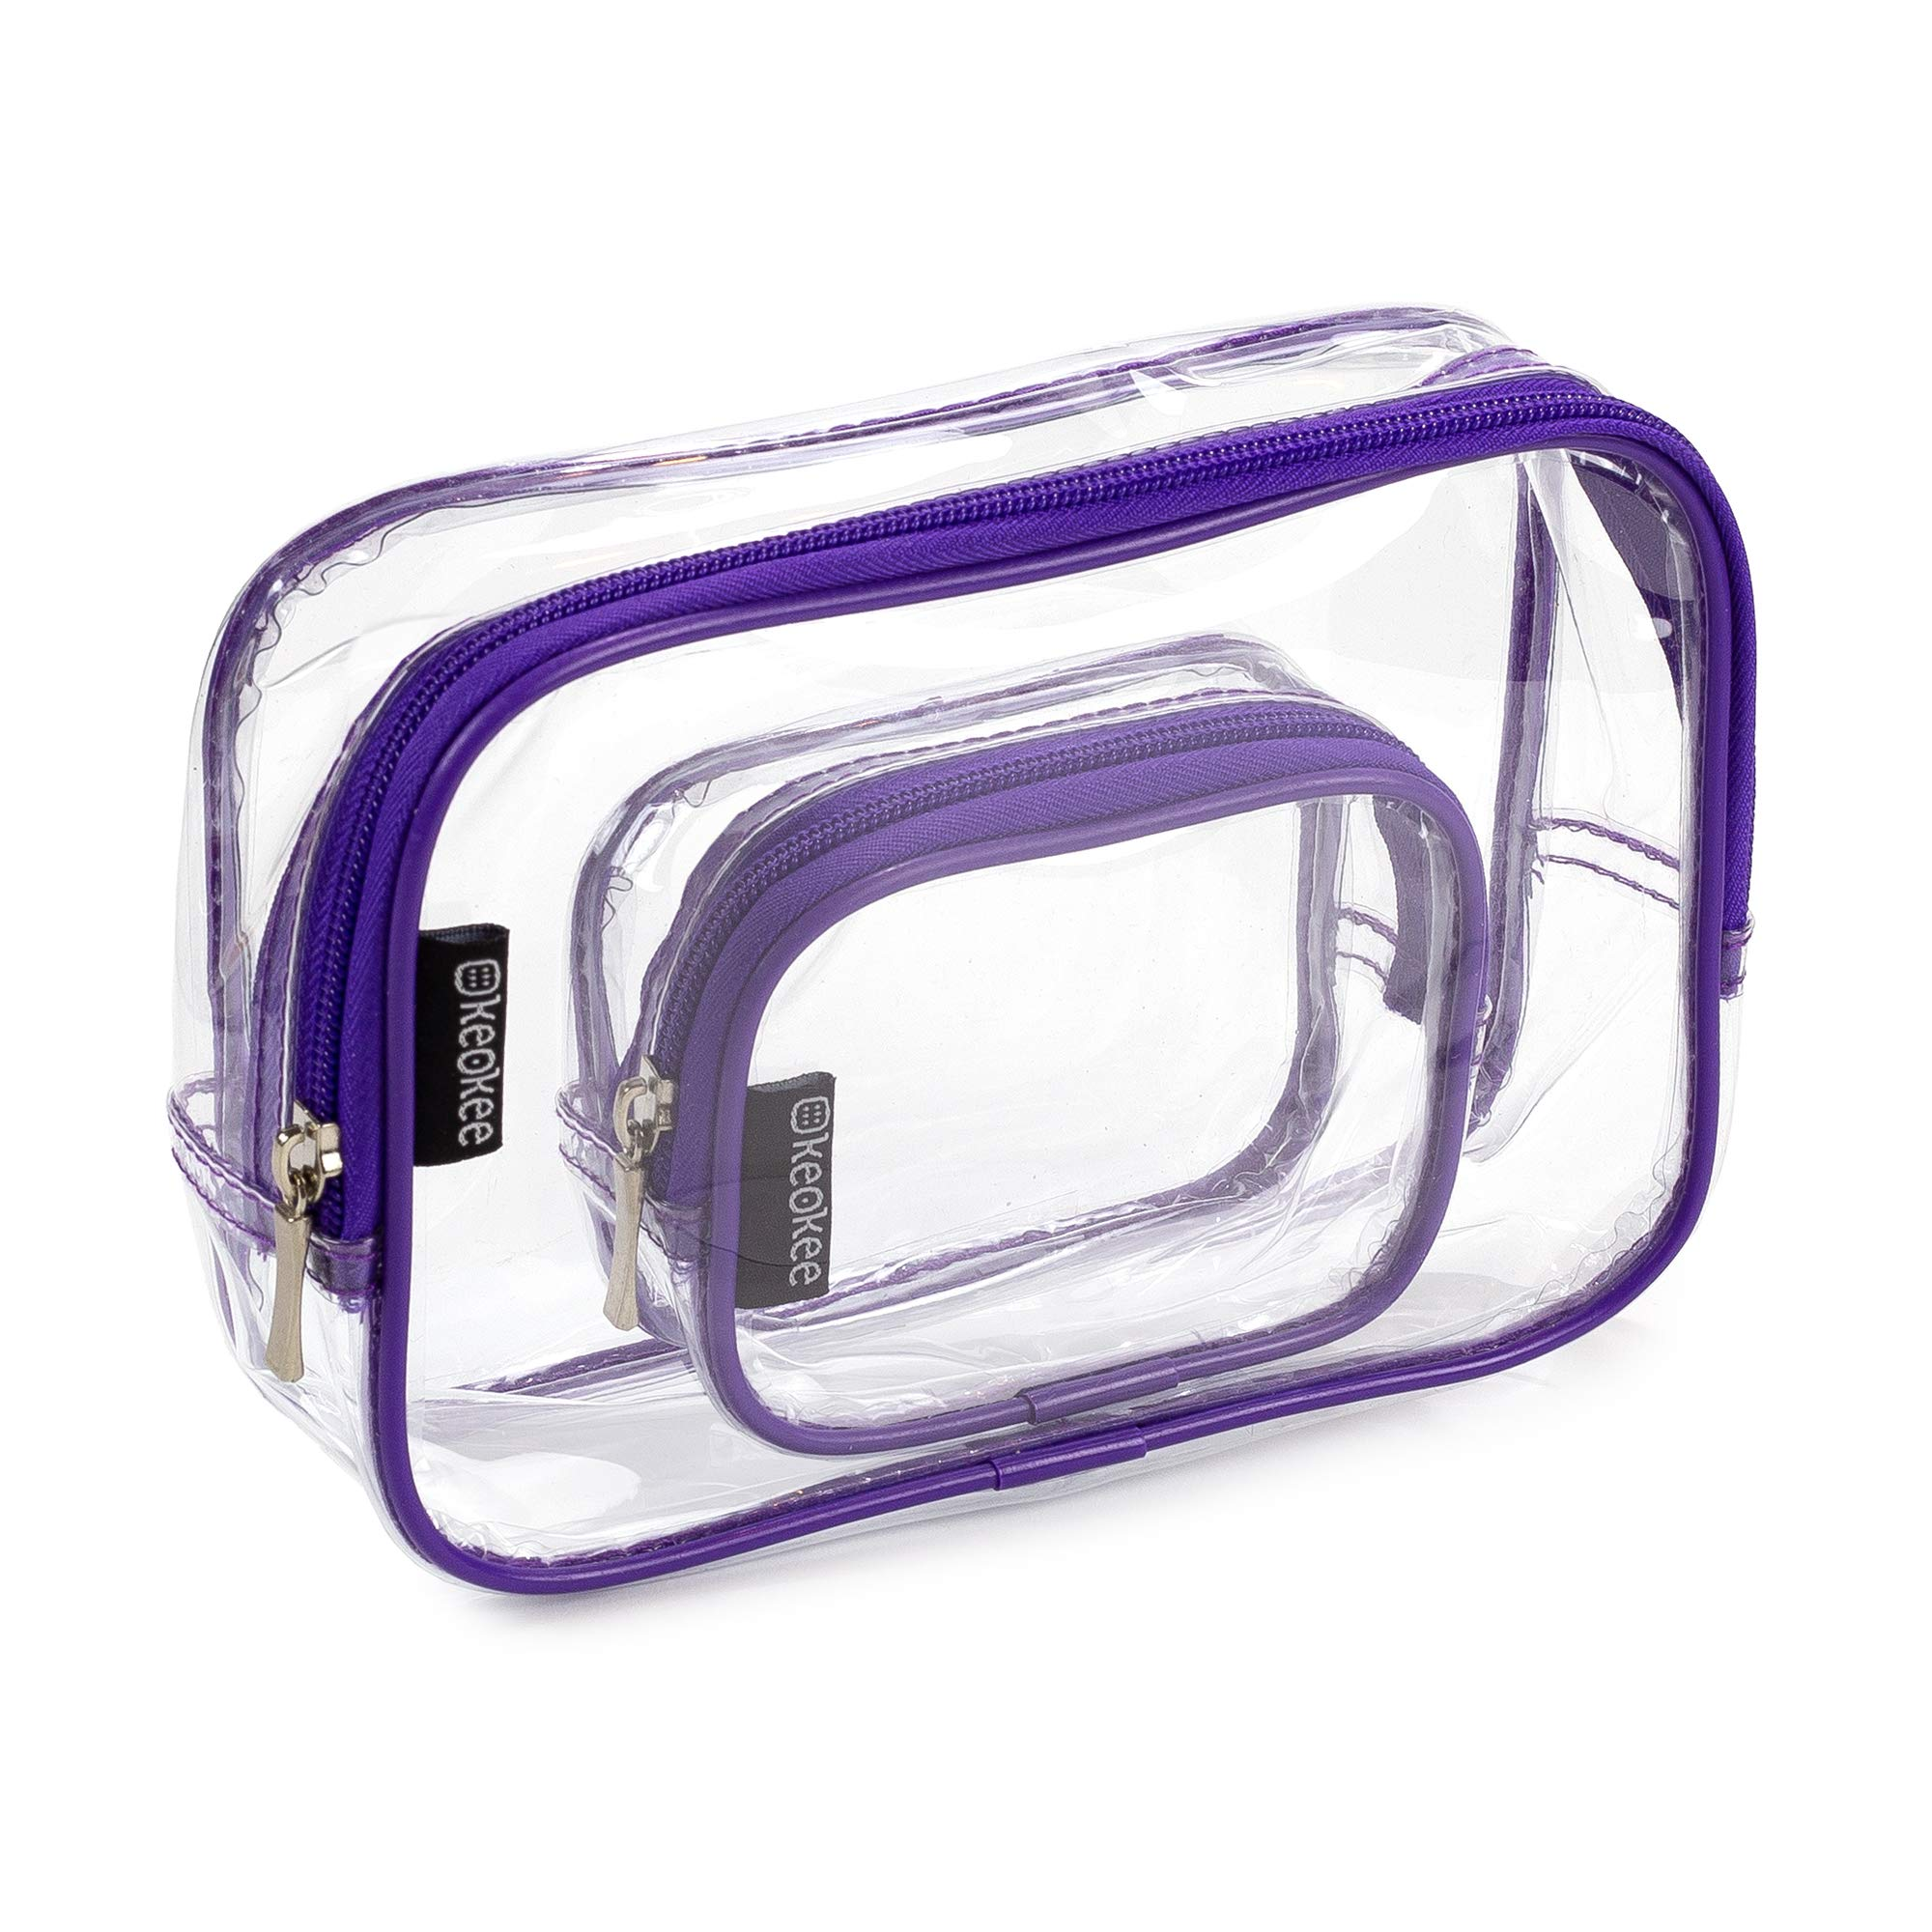 Keokee Clear Toiletry Bag Set, Quart Size with Smaller Case for Travel and Organizing, TSA Approved for 3-1-1 Liquids (Purple)